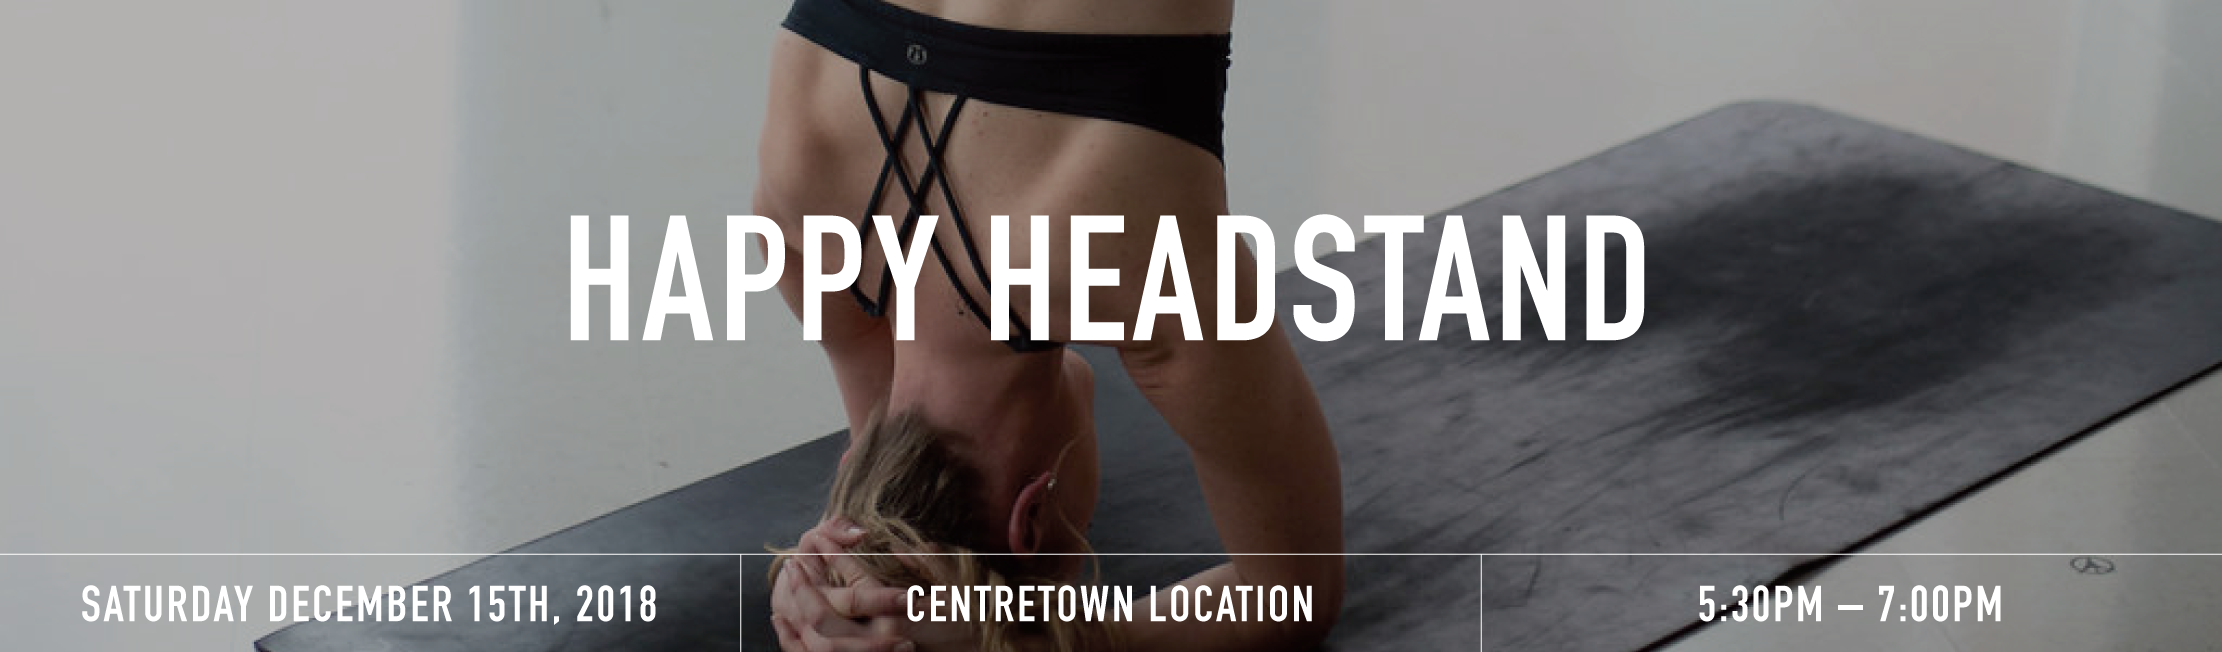 Happy headstand banner  4